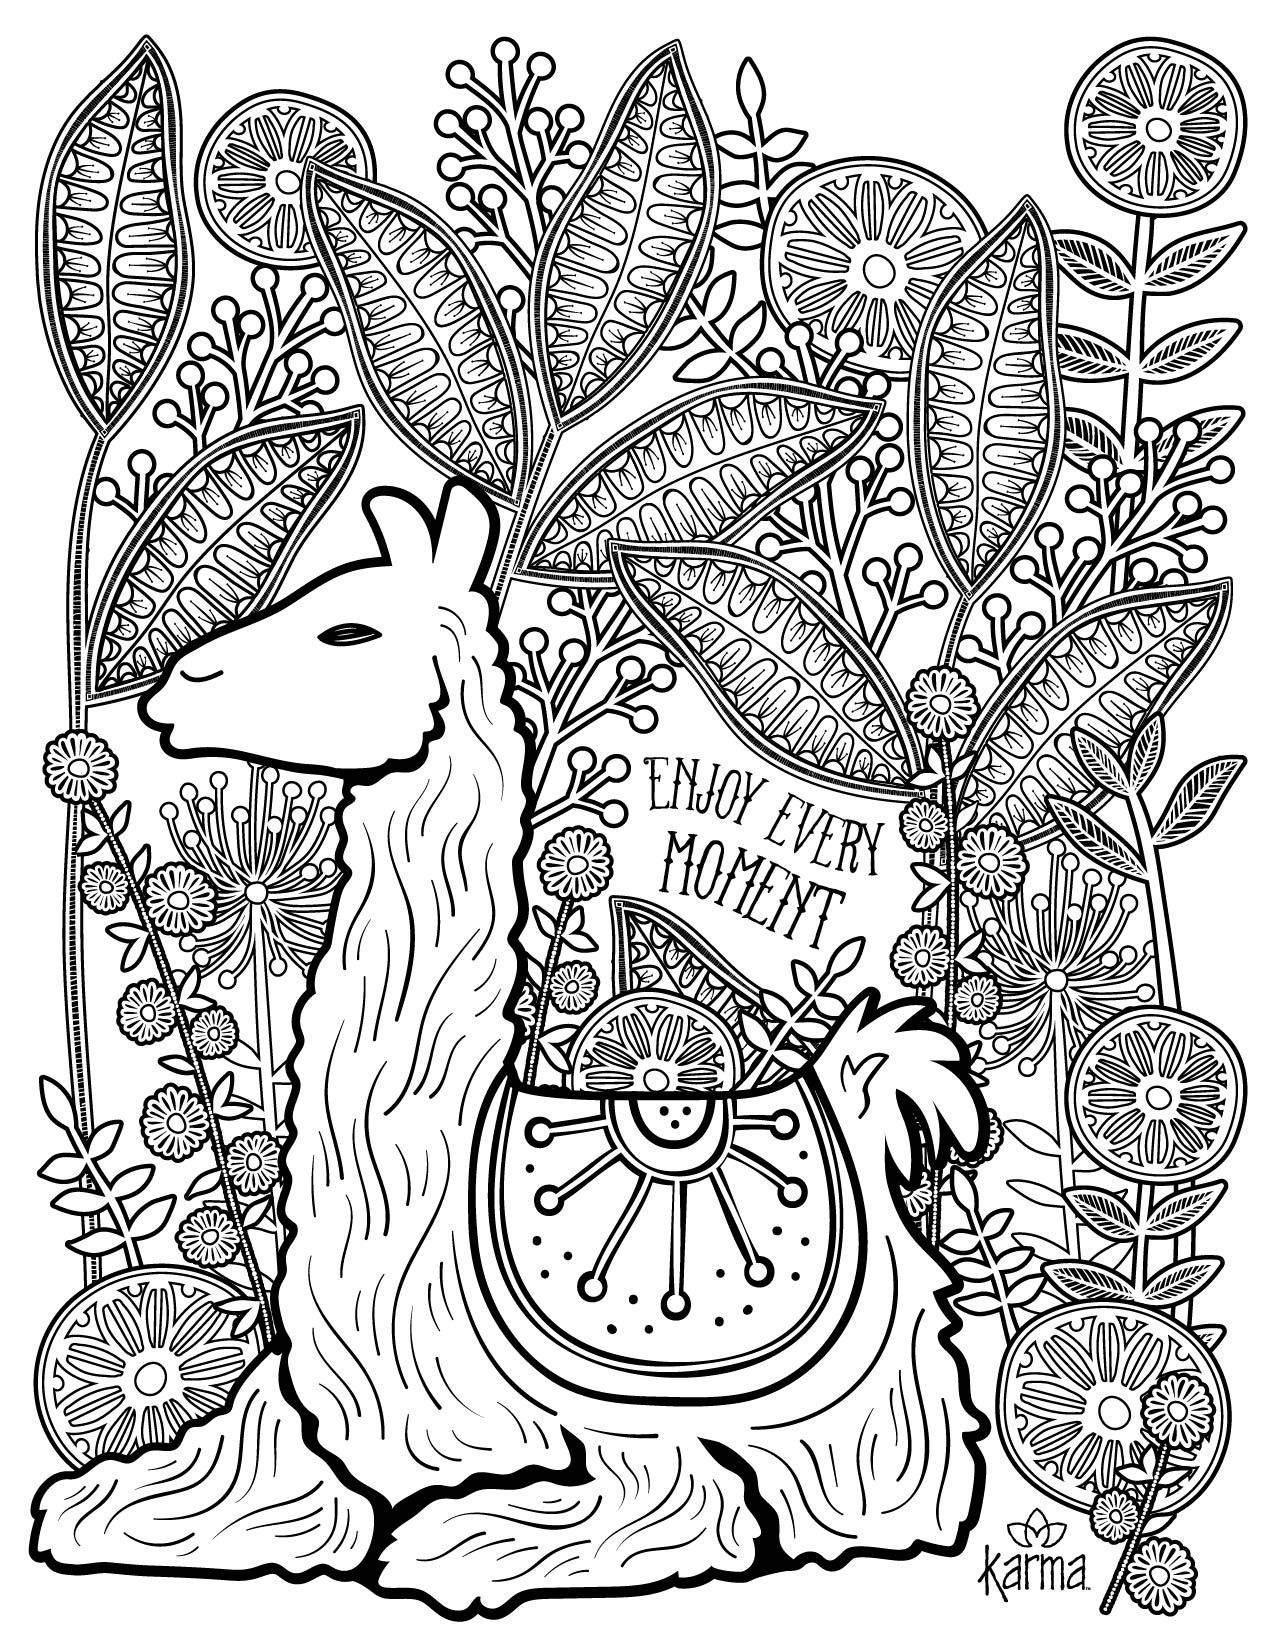 Llamacorn Coloring Pages At Getdrawings